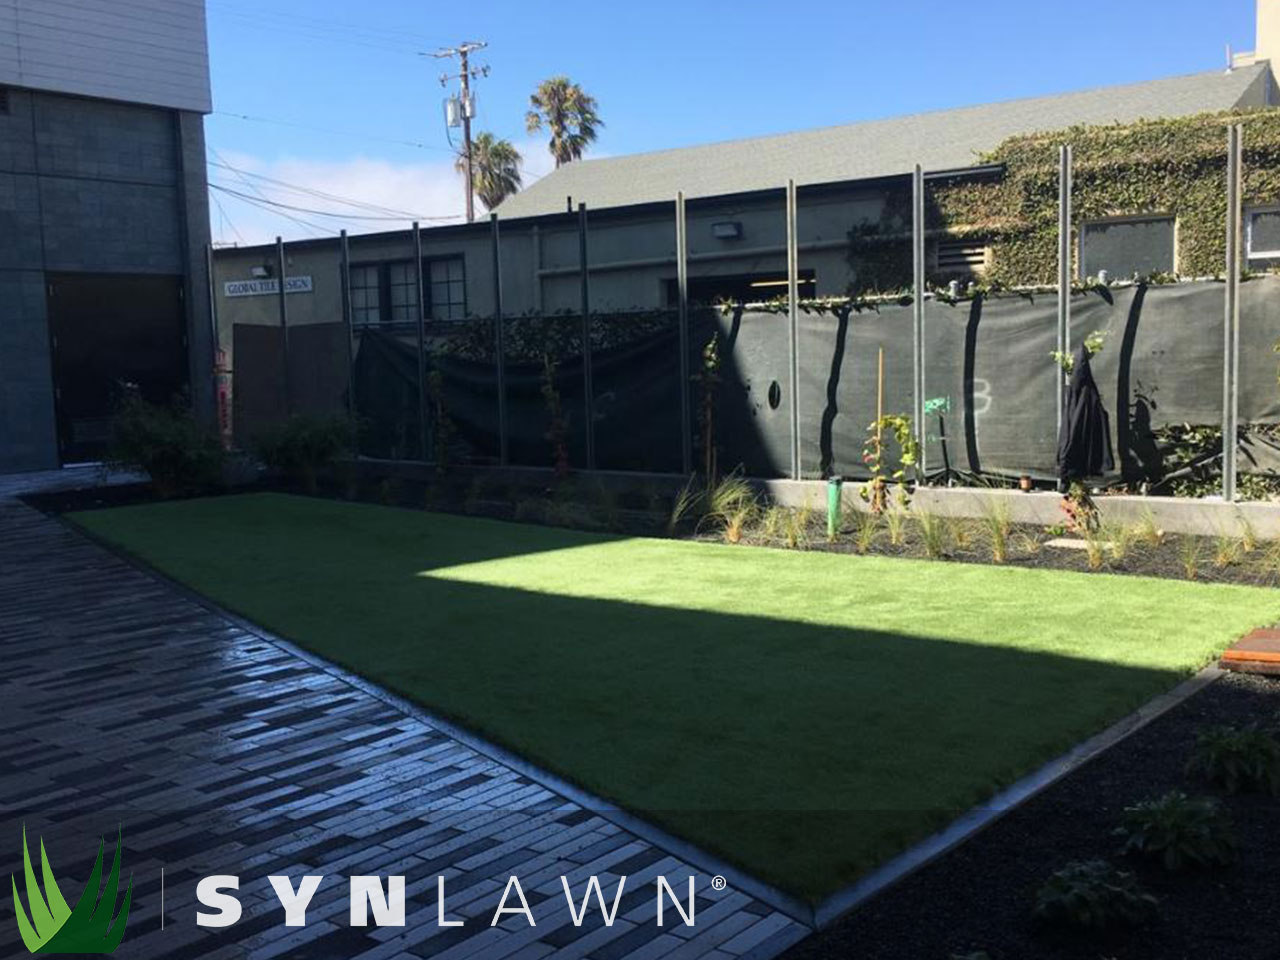 SYNLawn Commercial Photo 1